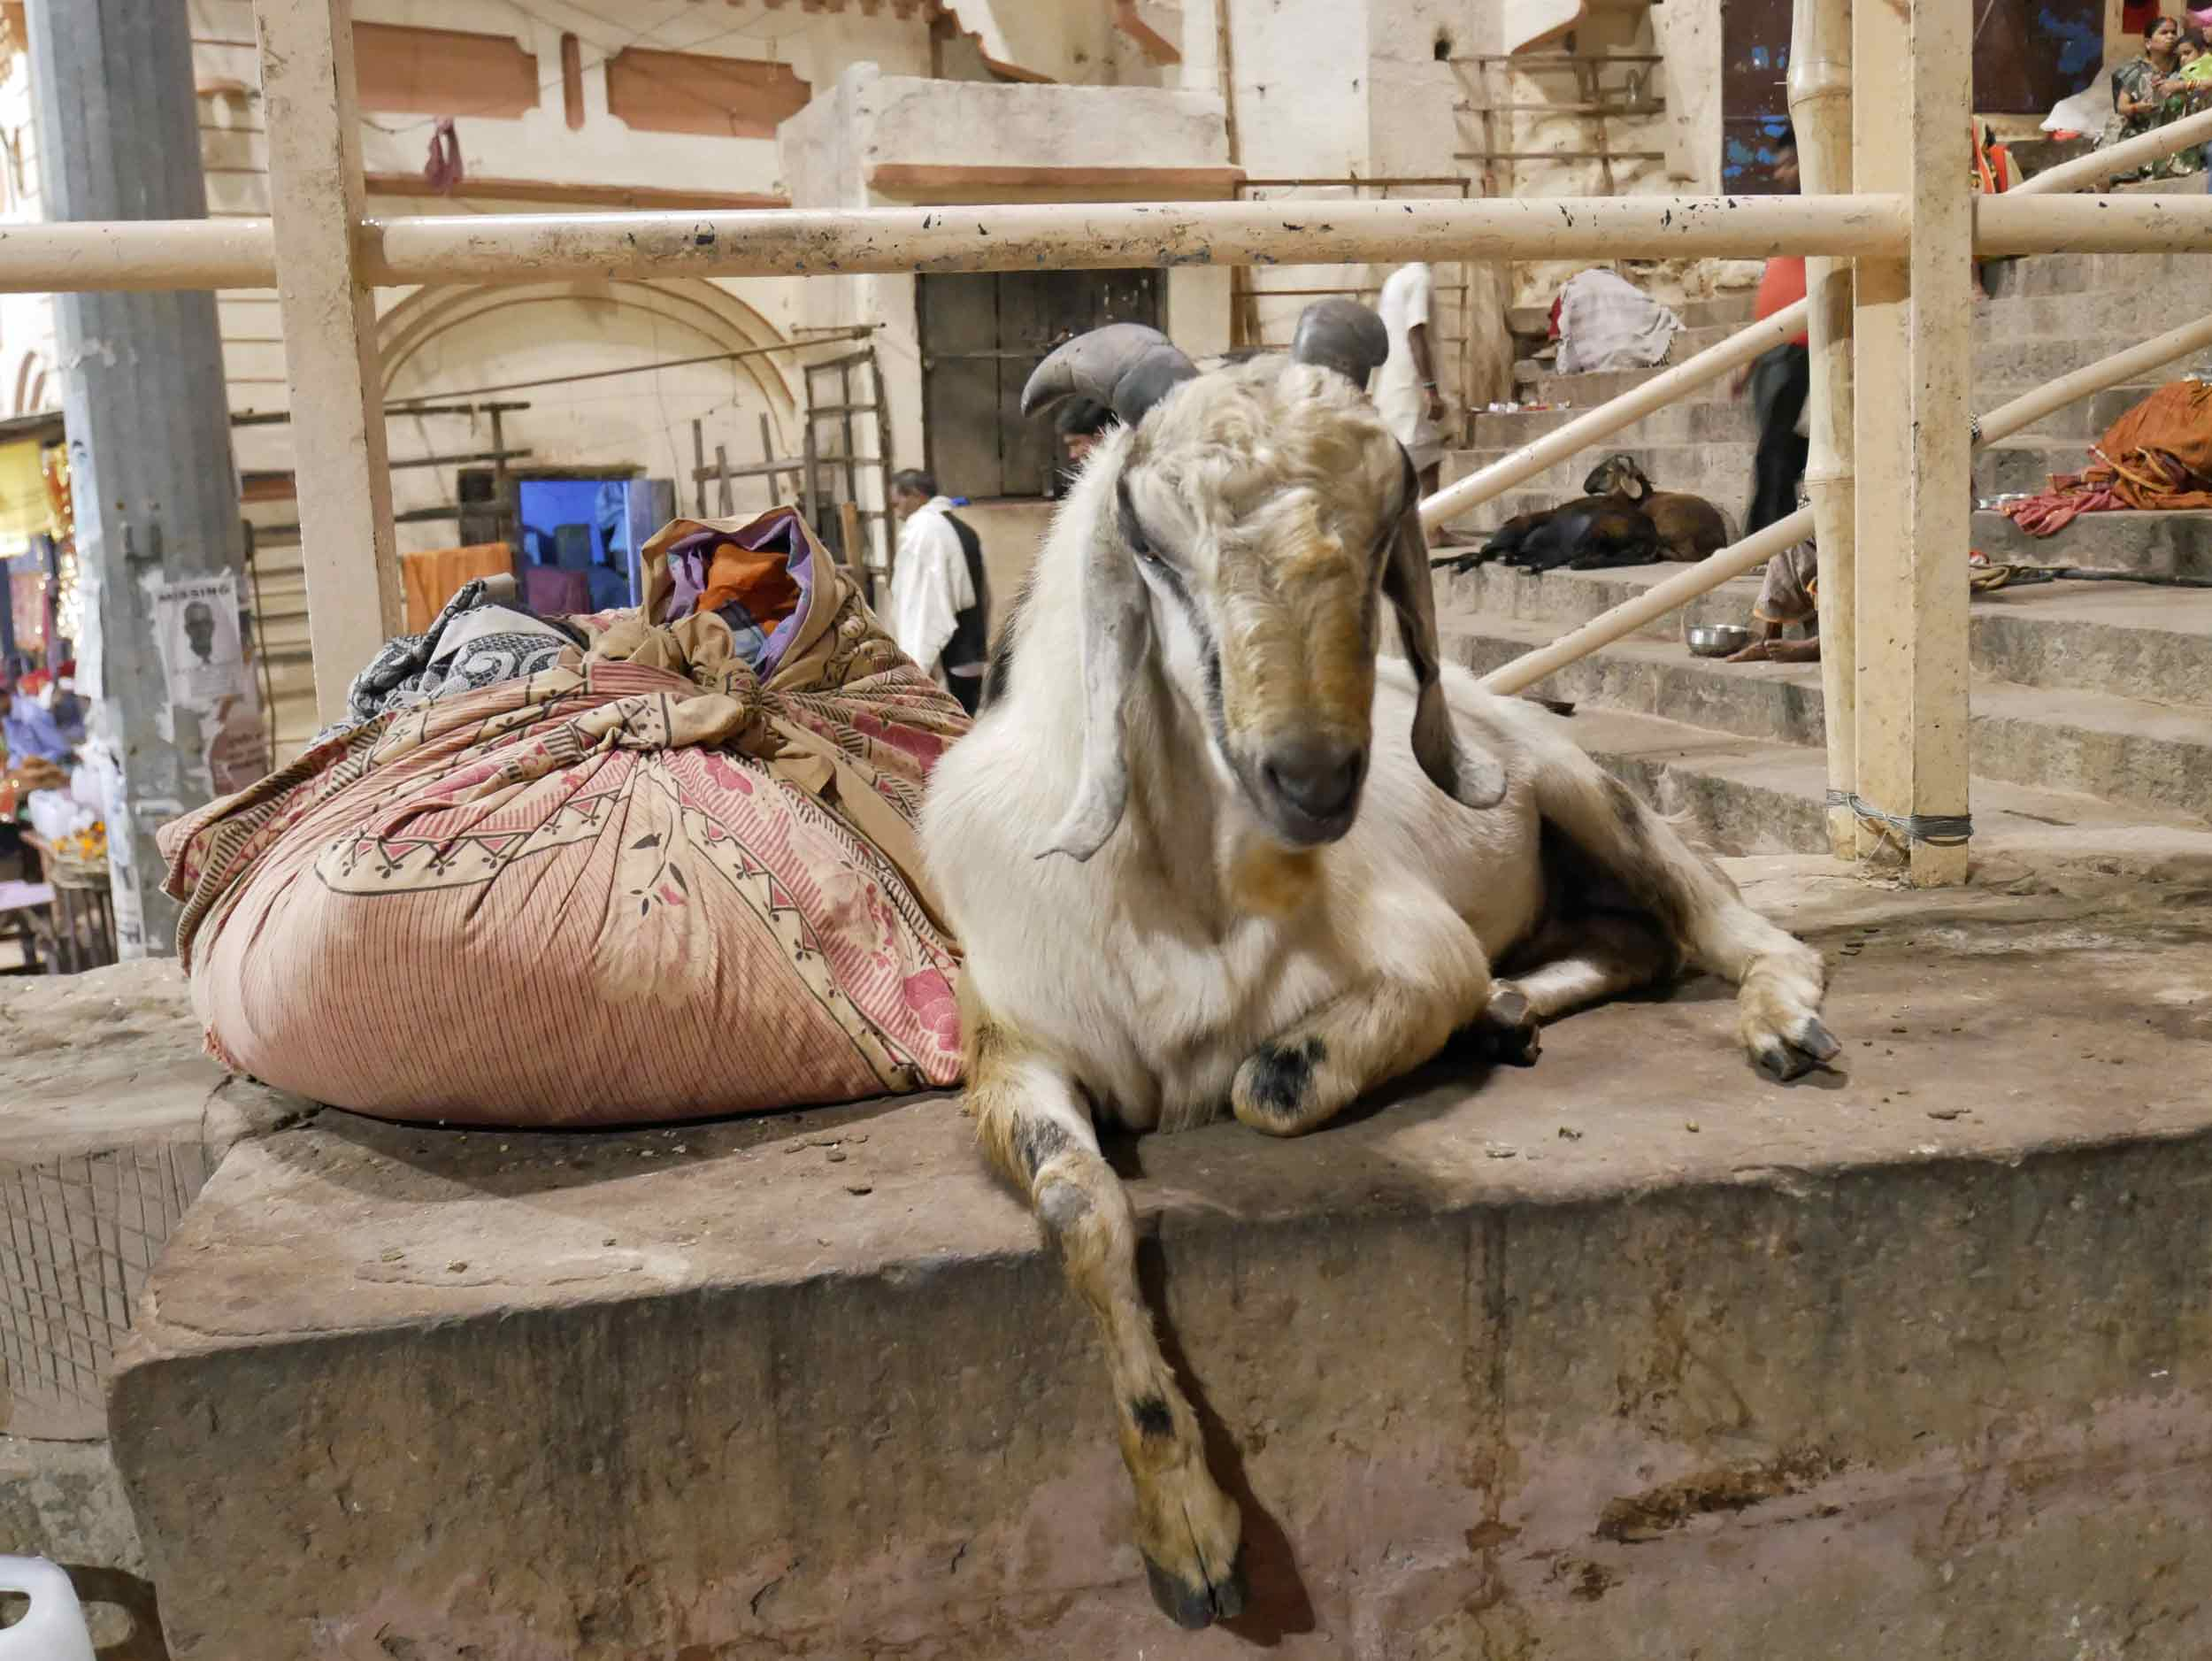 Back in Varanasi old town, Martin couldn't resist taking photos of these cute goats who have taken up residence on the  ghats .